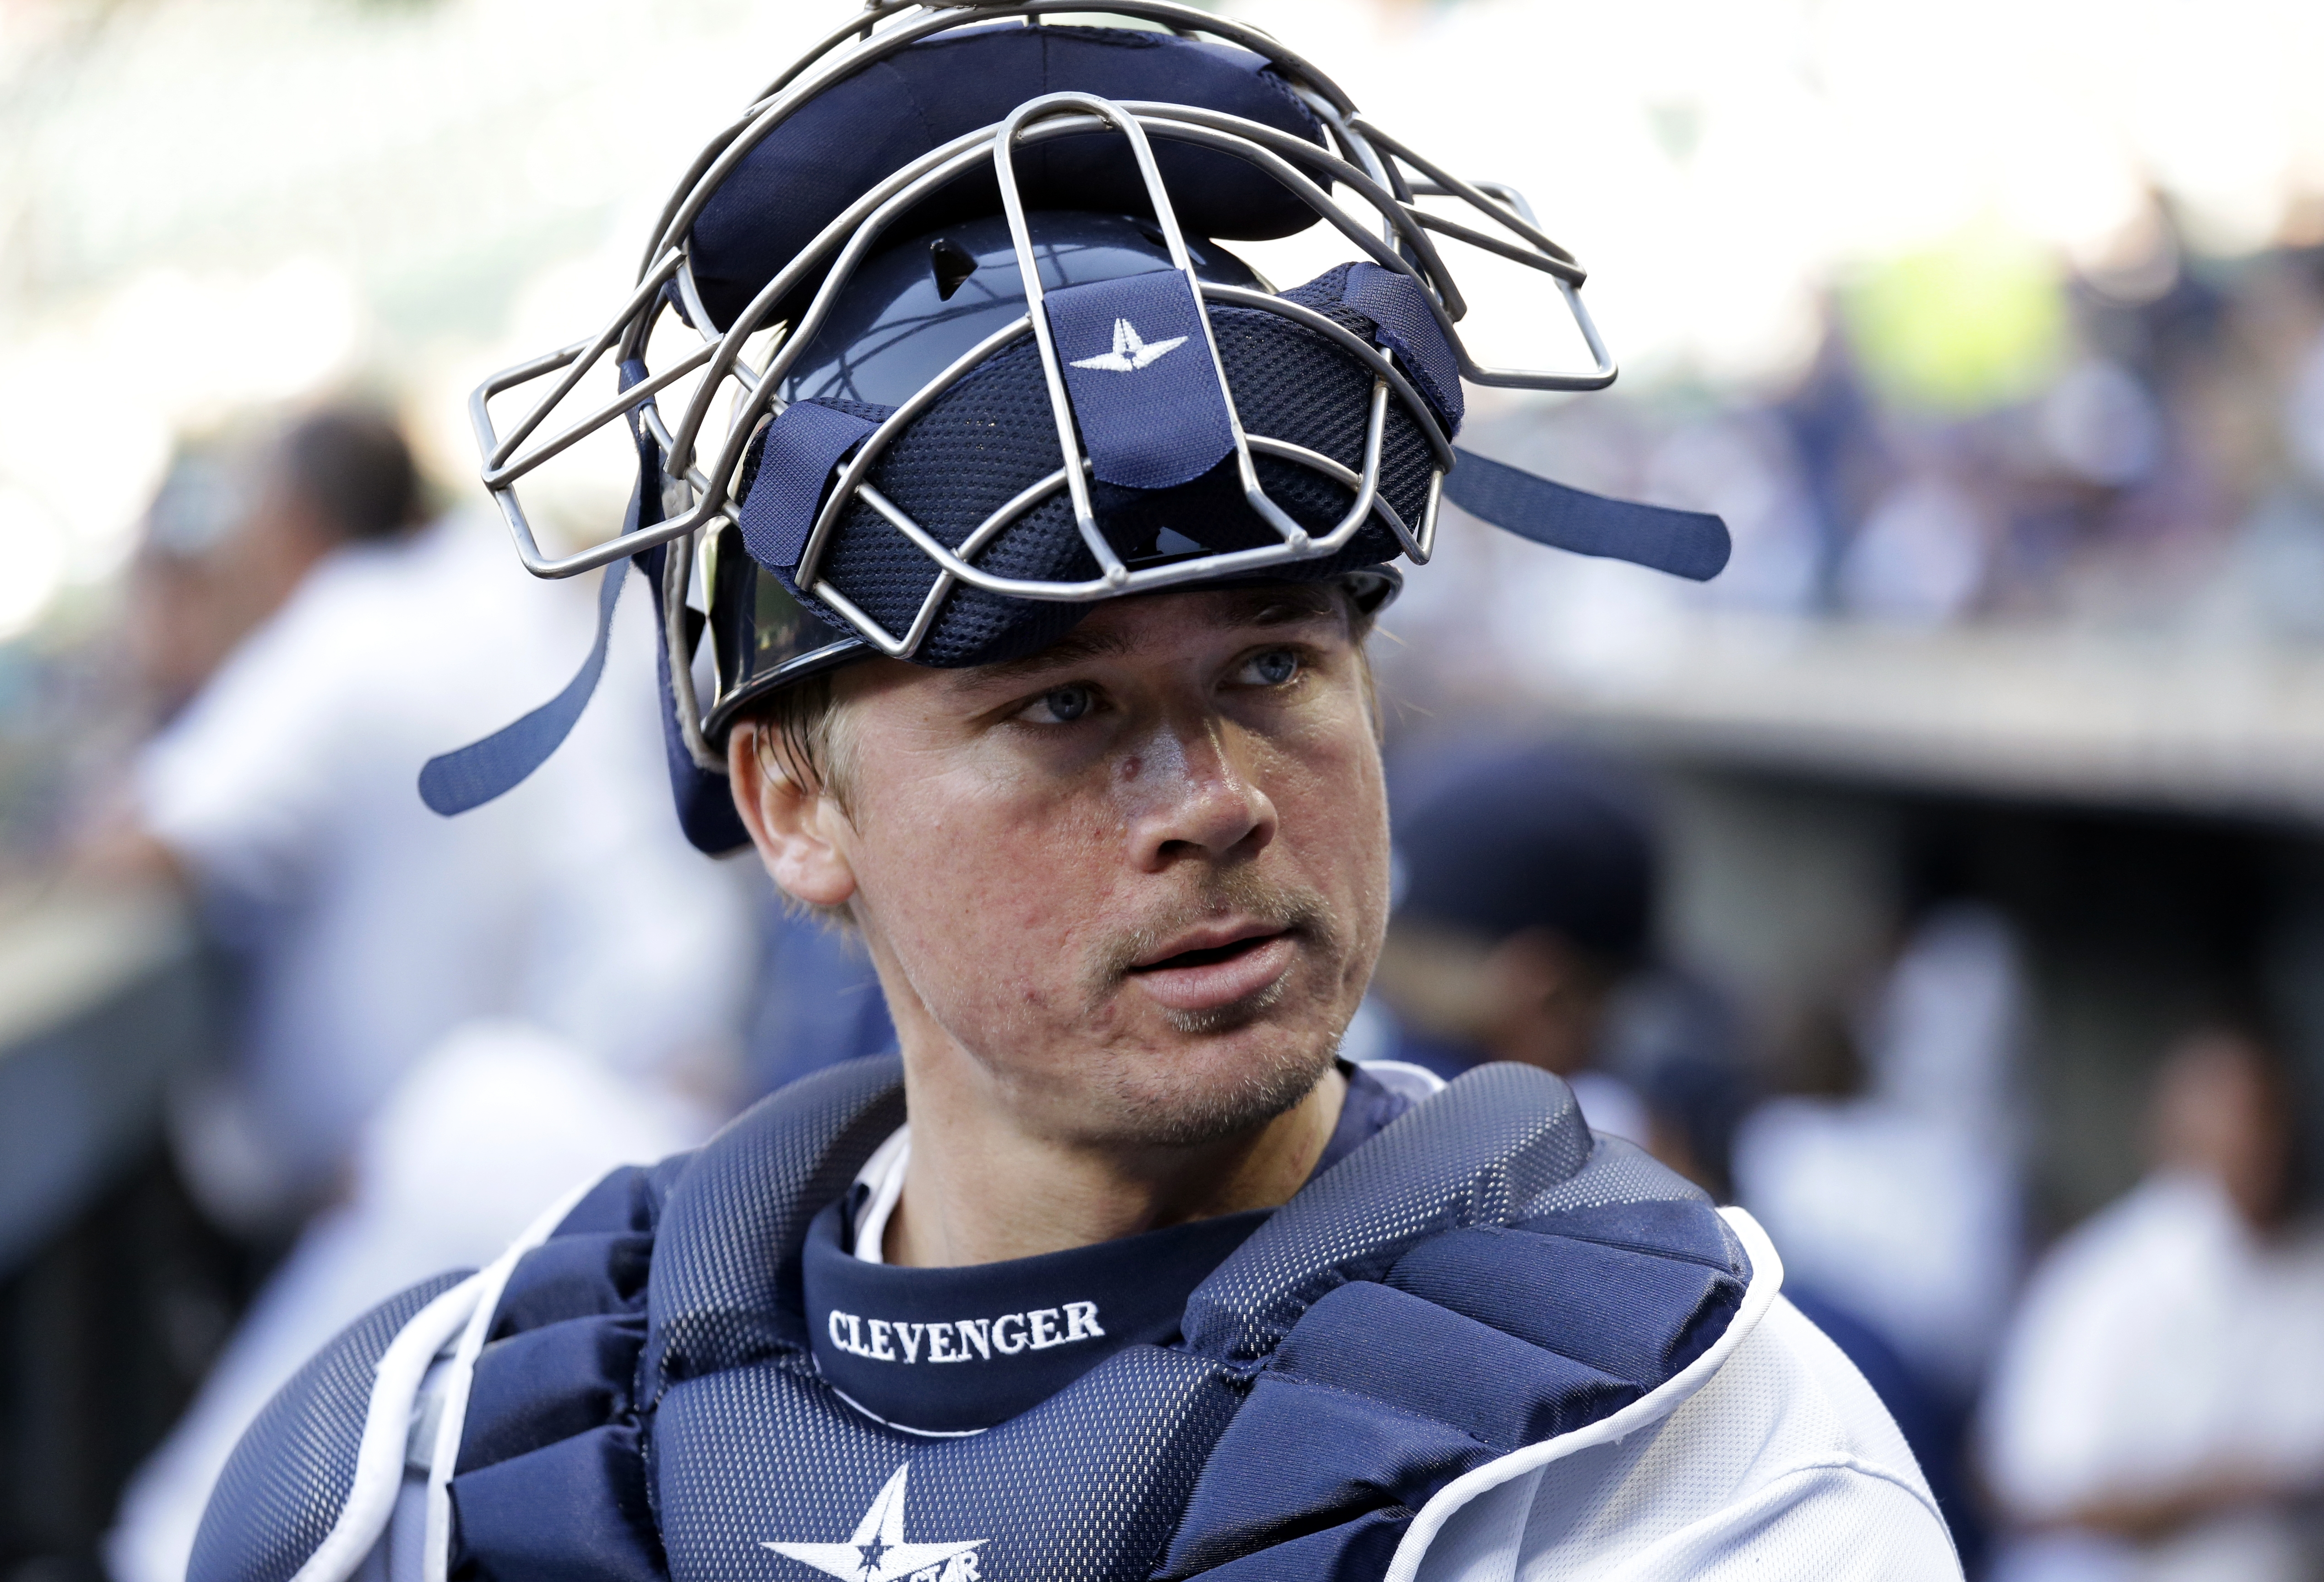 Seattle Mariners catcher Steve Clevenger looks out of the dugout before a baseball game against the Pittsburgh Pirates Wednesday, June 29, 2016, in Seattle. (AP Photo/Elaine Thompson)